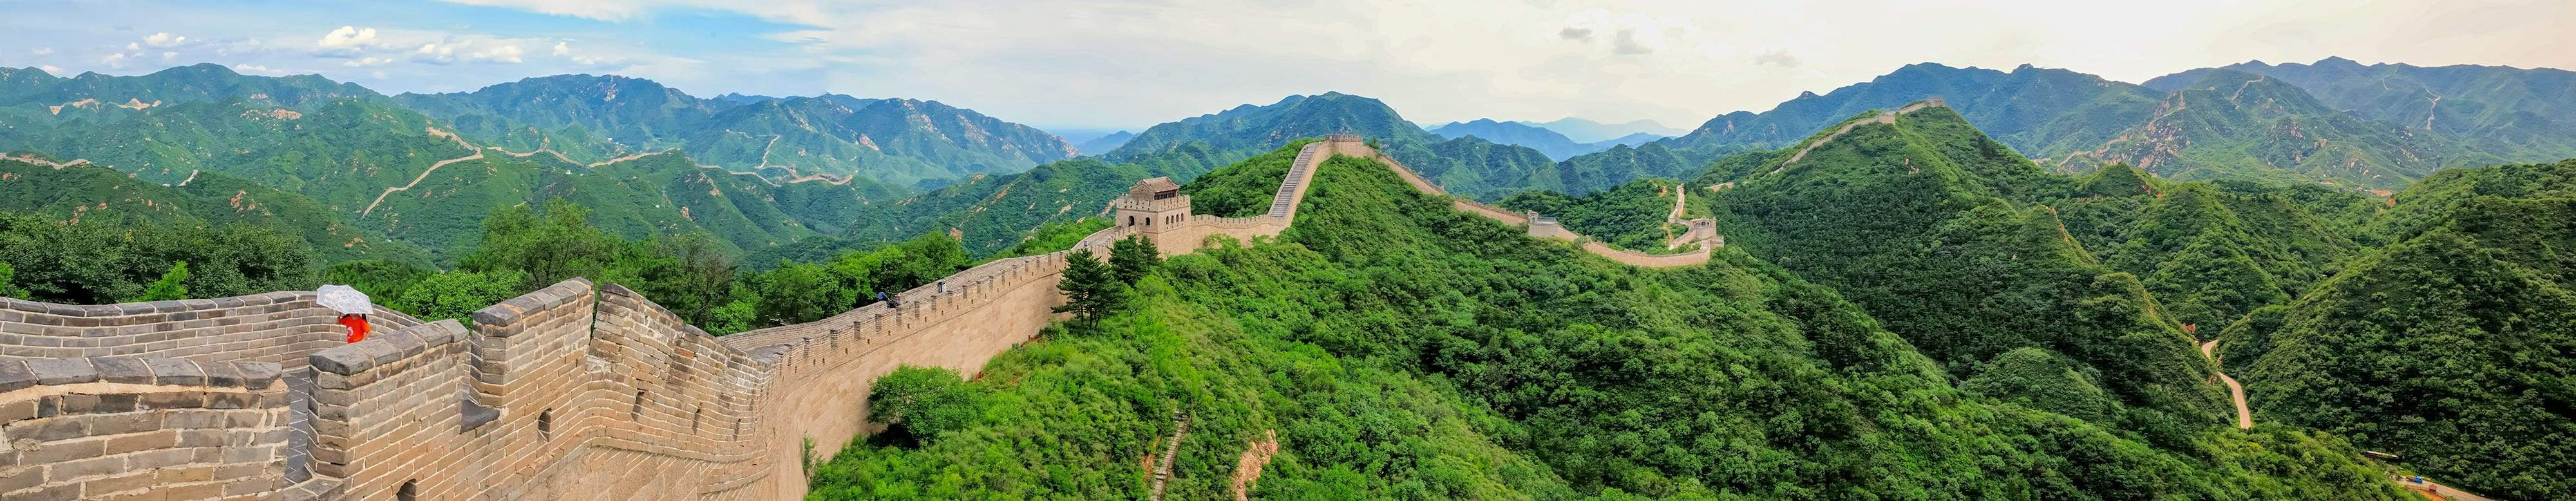 Wide Shot of Great wall China